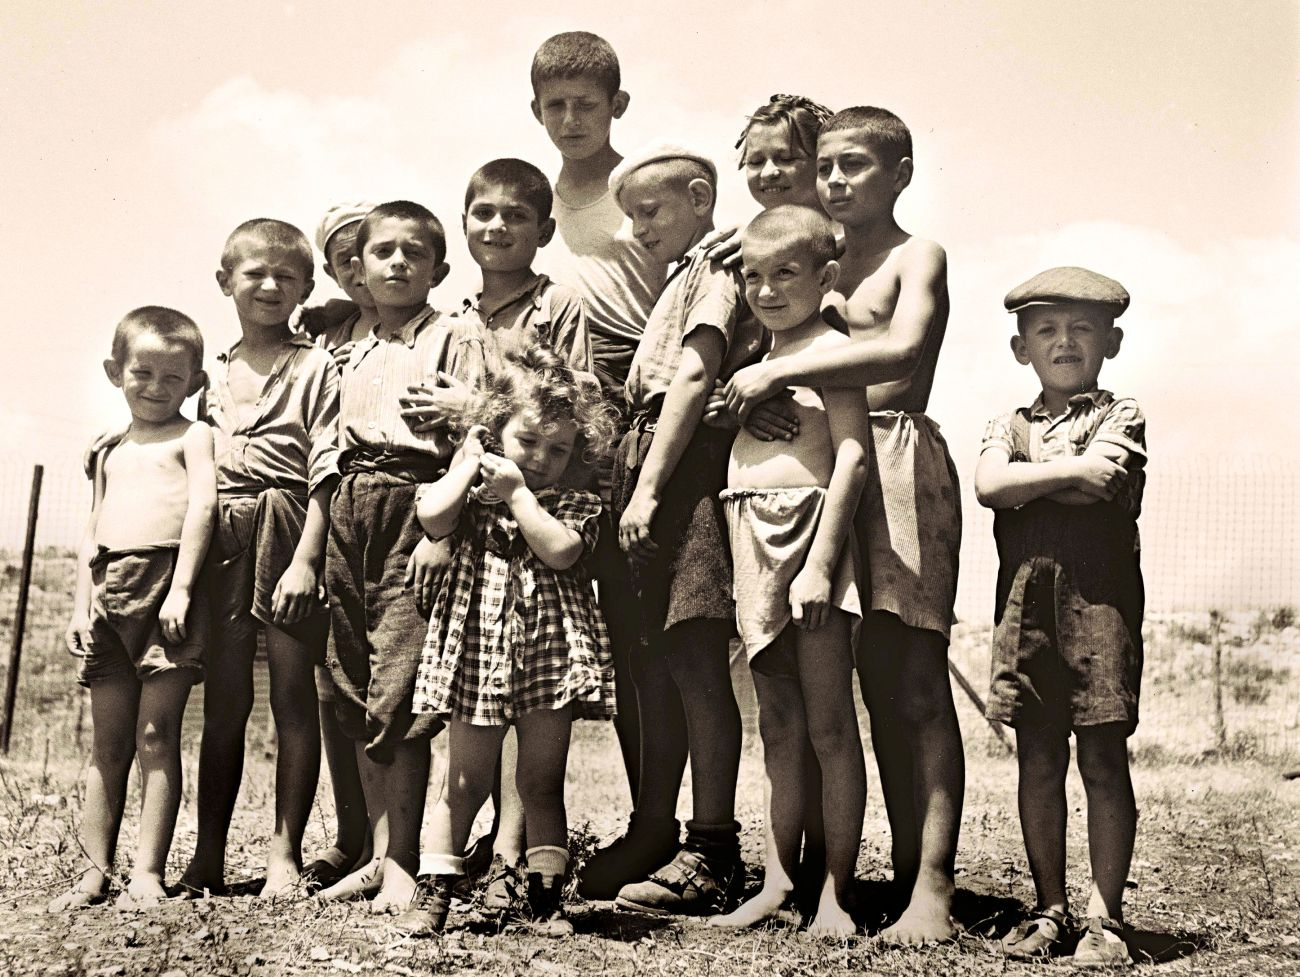 Flickr_-_Government_Press_Office_(GPO)_-_A_group_of_orphans,_survivors_of_the_holocaust,_atthe_reception_camp_in_Atlit_t.